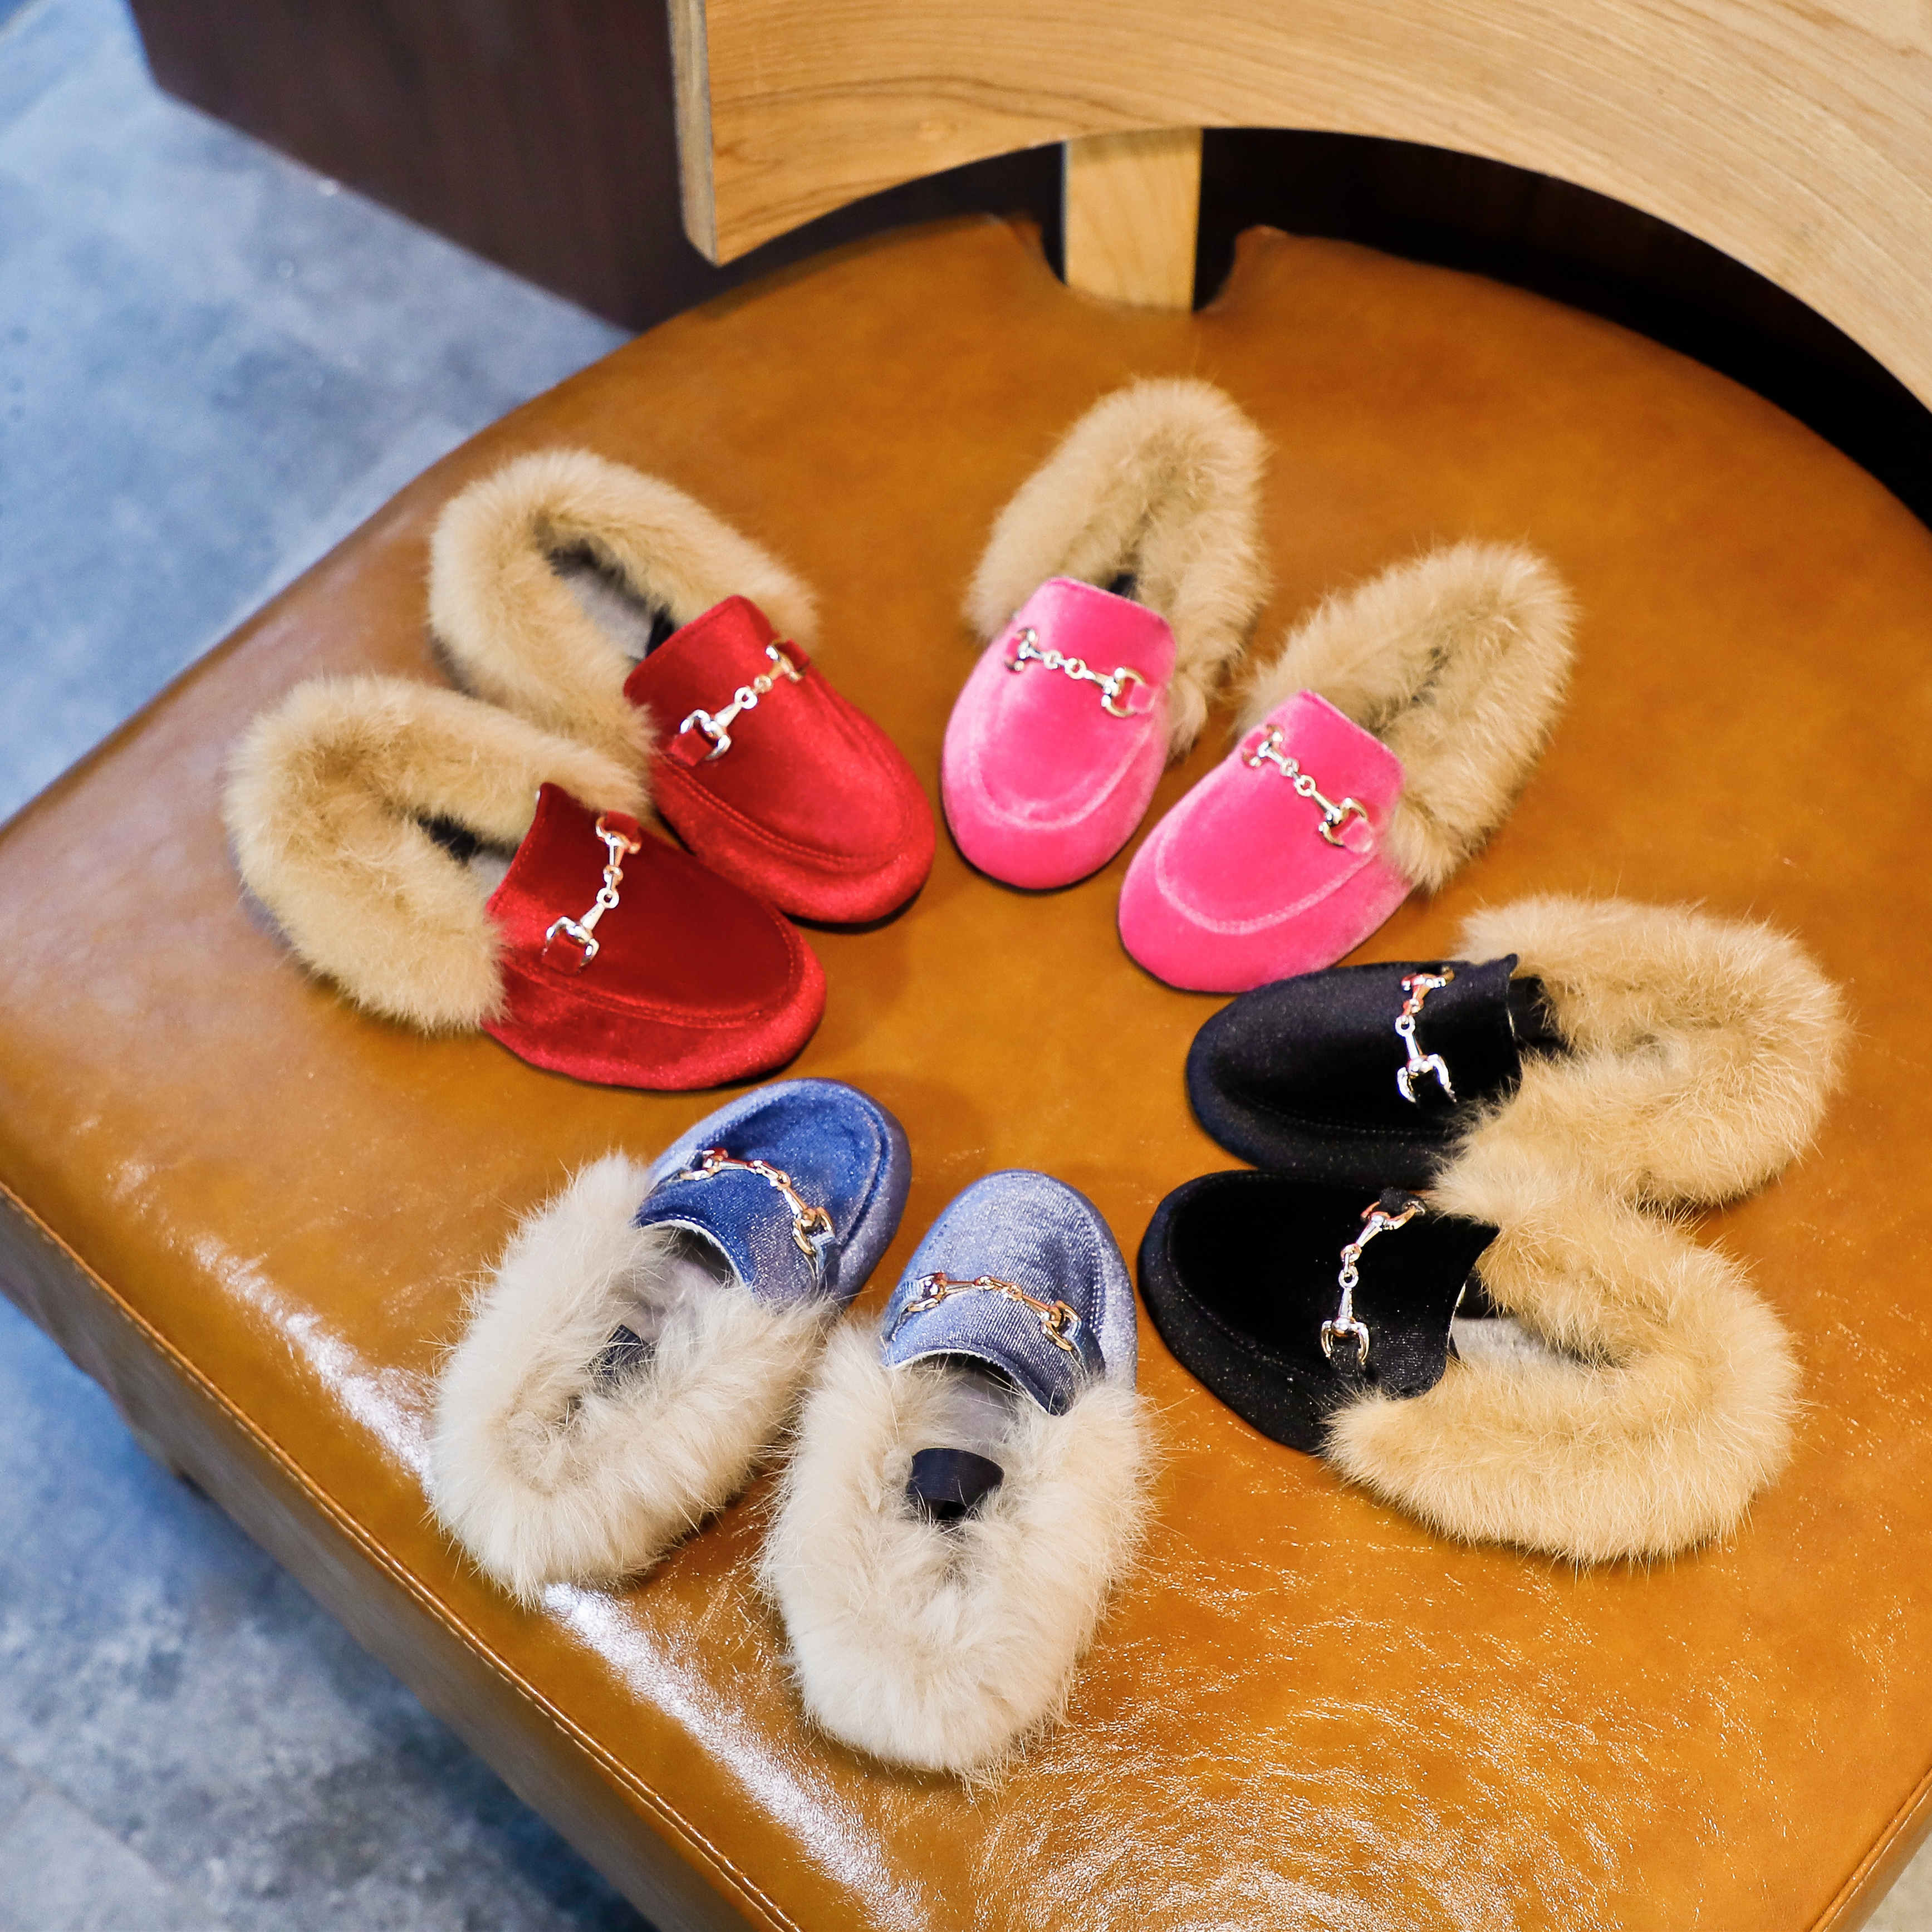 Winter Kids Fur Shoes Toddler Brand Black Loafer Fashion Moccasins Baby Girls Shoes Warm Flats PU Leather Princess Shoes